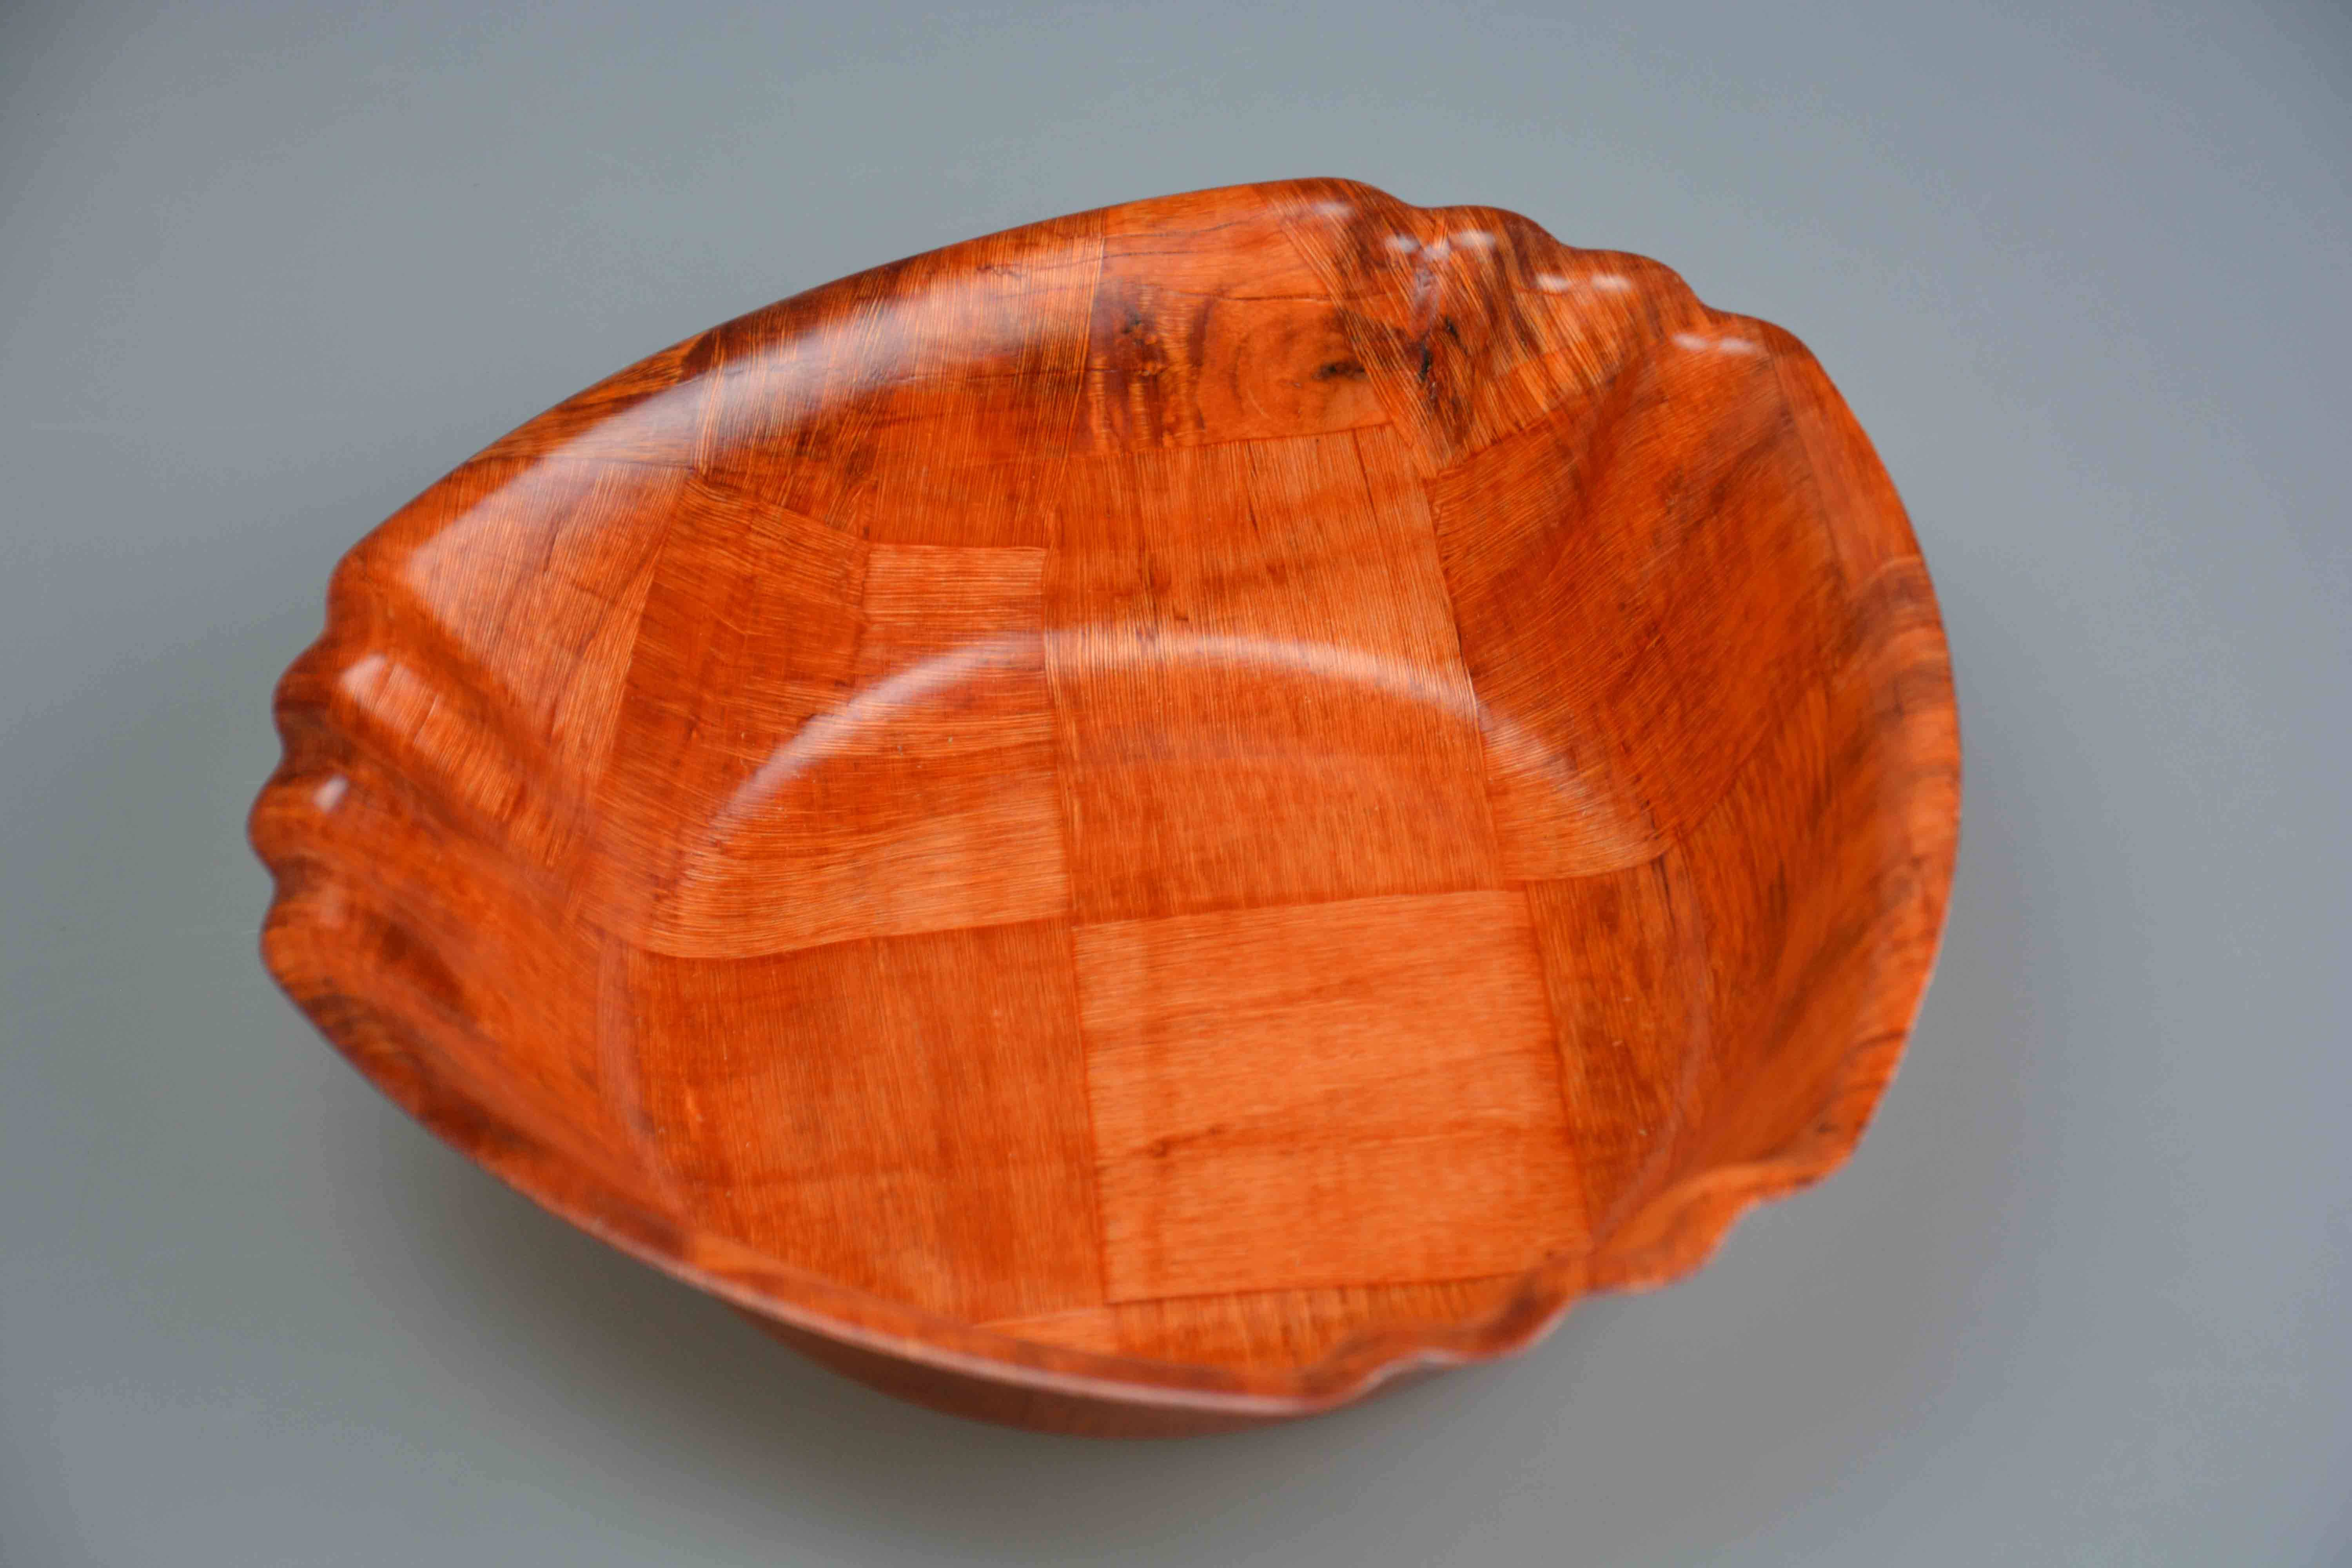 Vietnam Natural Hand Woven Salad Fruit Bowl Made of Bamboo Wooden